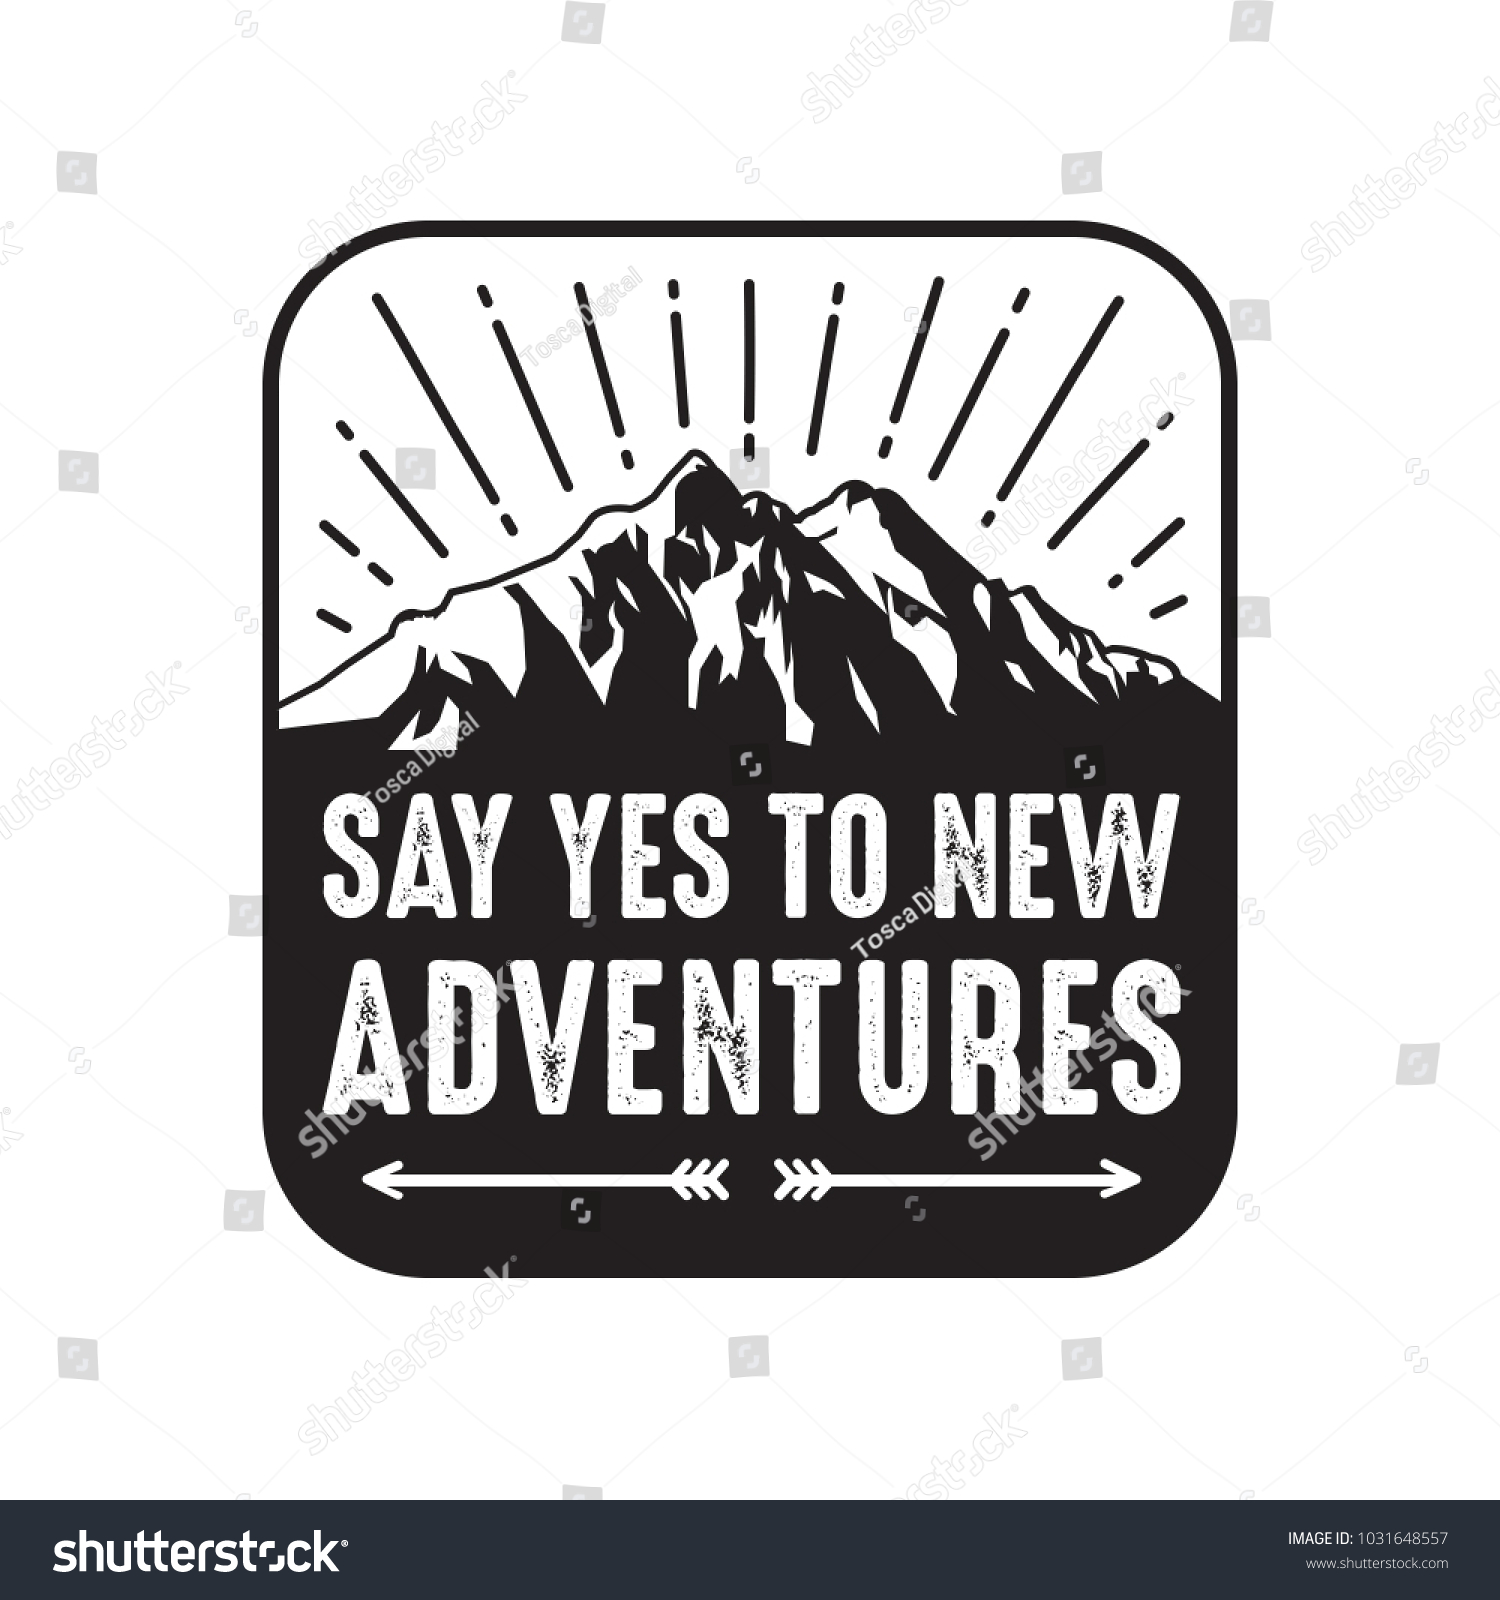 Adventure Sayings Quotes 100 Vector Best Stock Vector Royalty Free